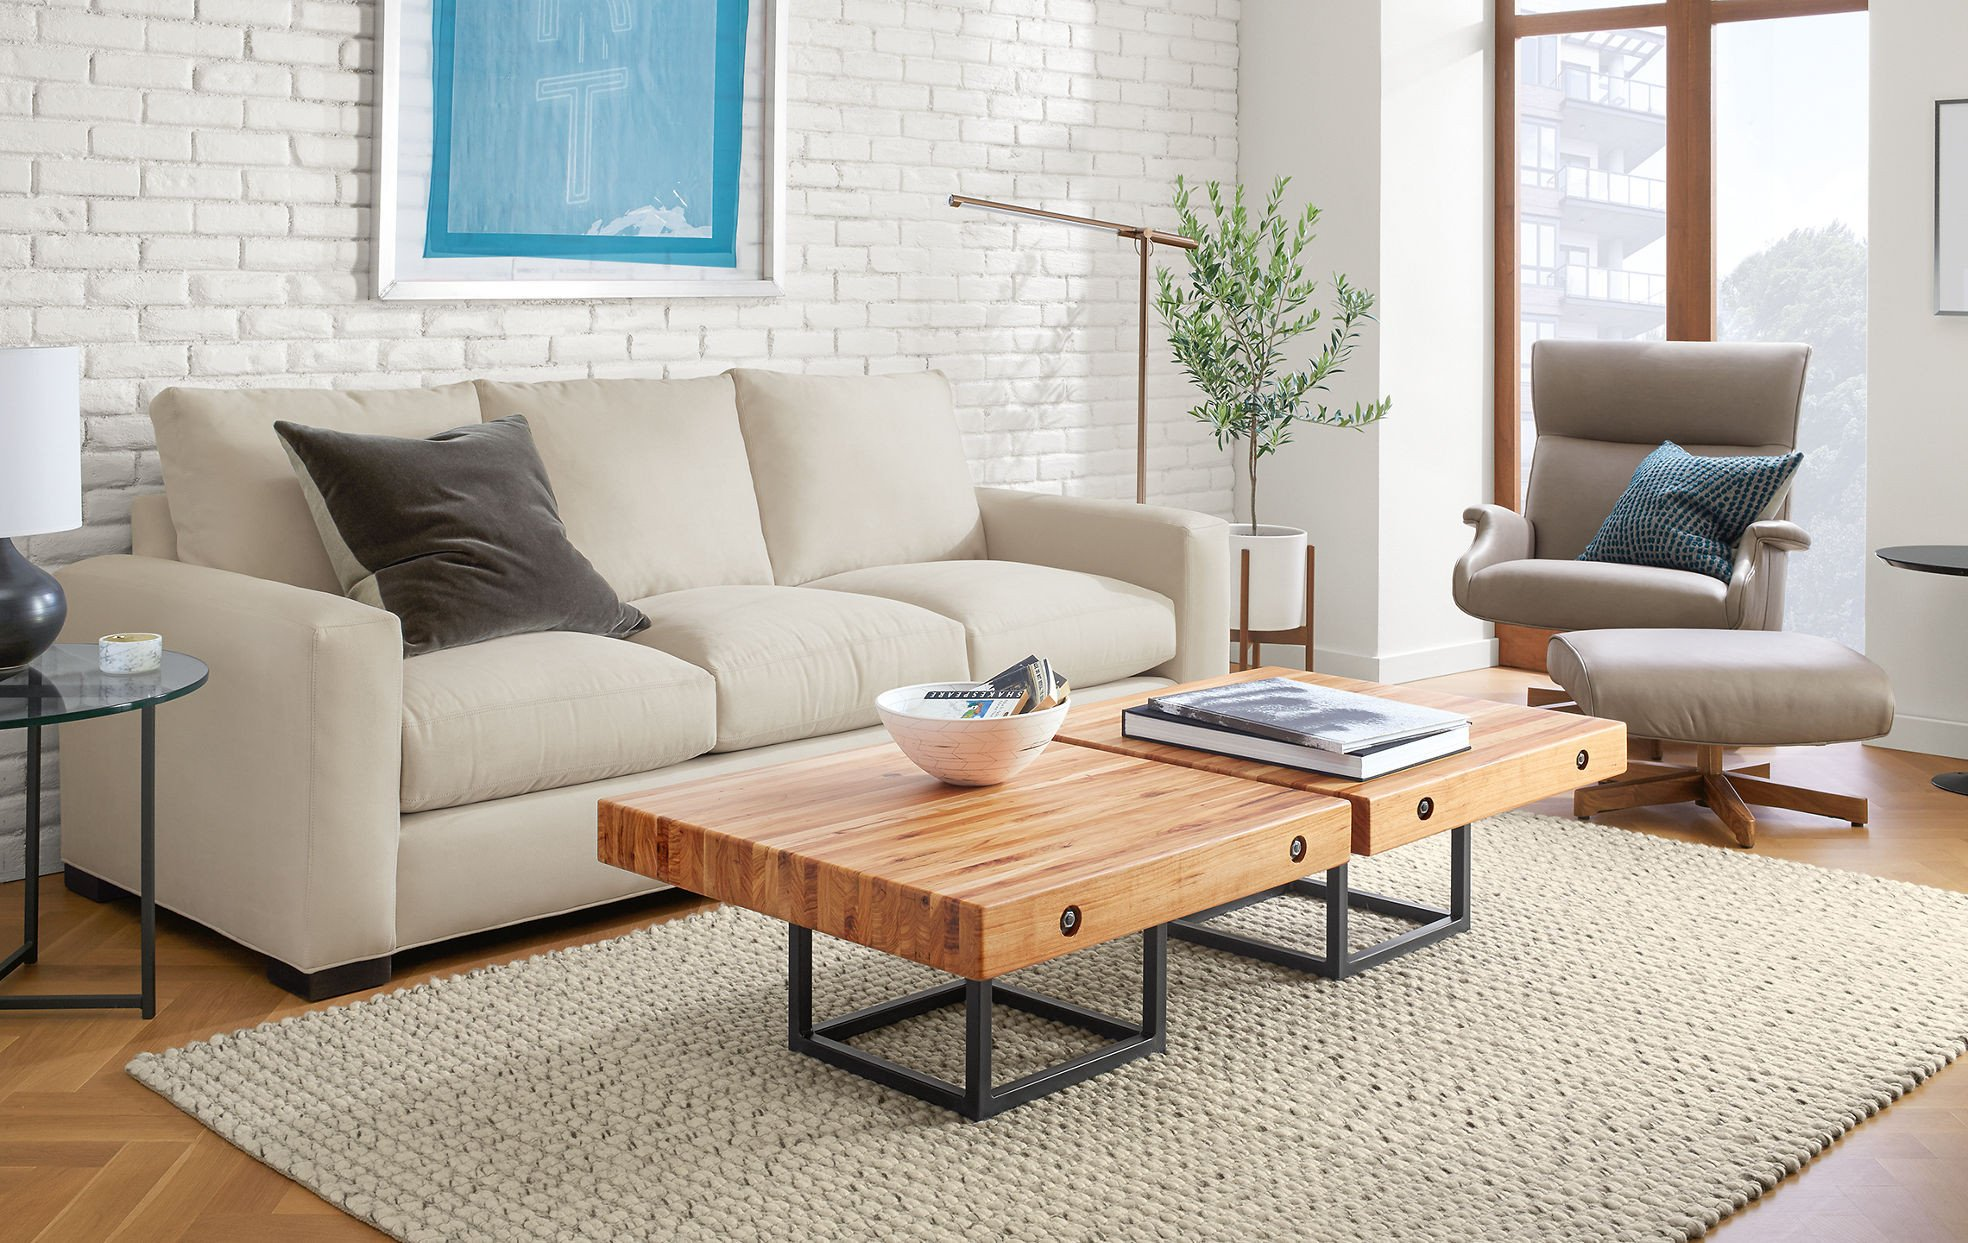 Rugs Contemporary Living Room Lovely Modern Rugs Rugs Room & Board